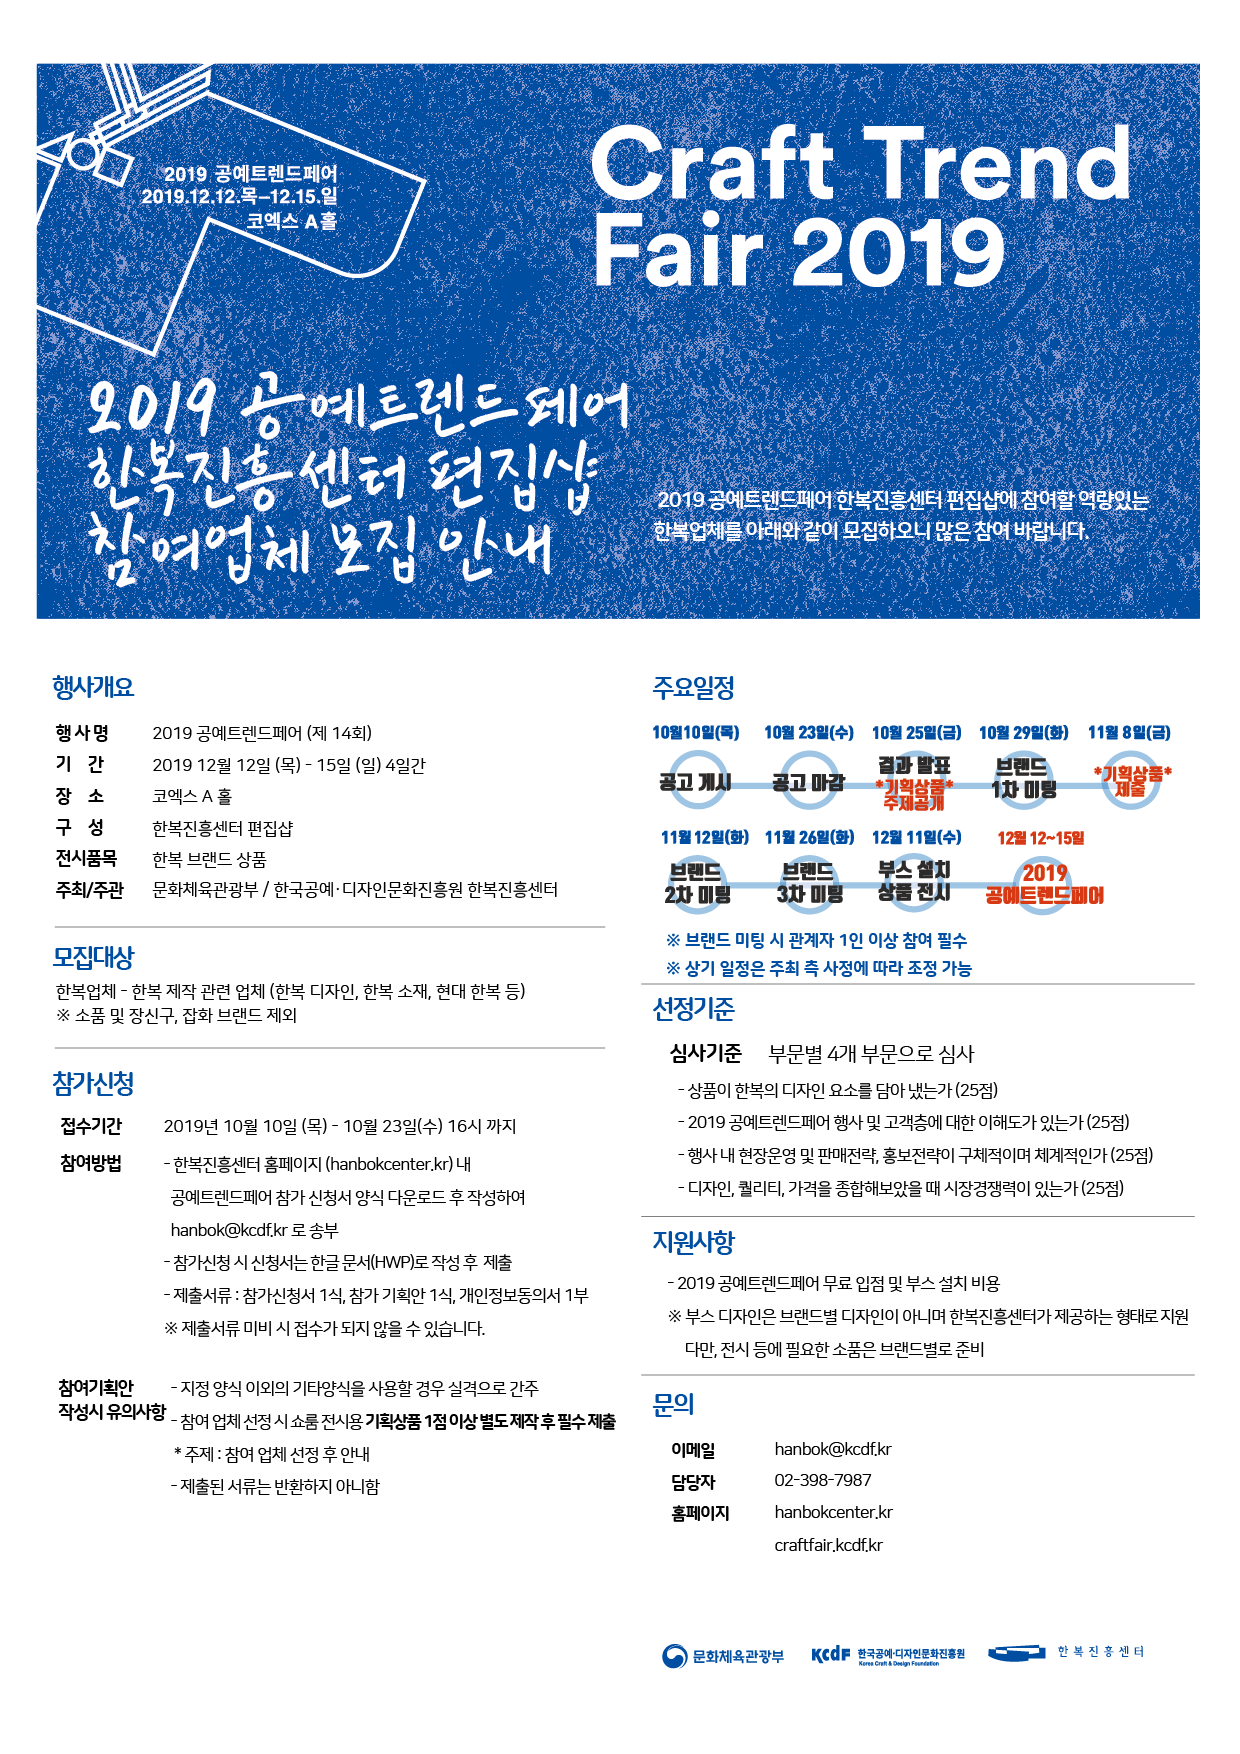 2019_CraftTrendFair_AD-210x275mm-06-02-07.png